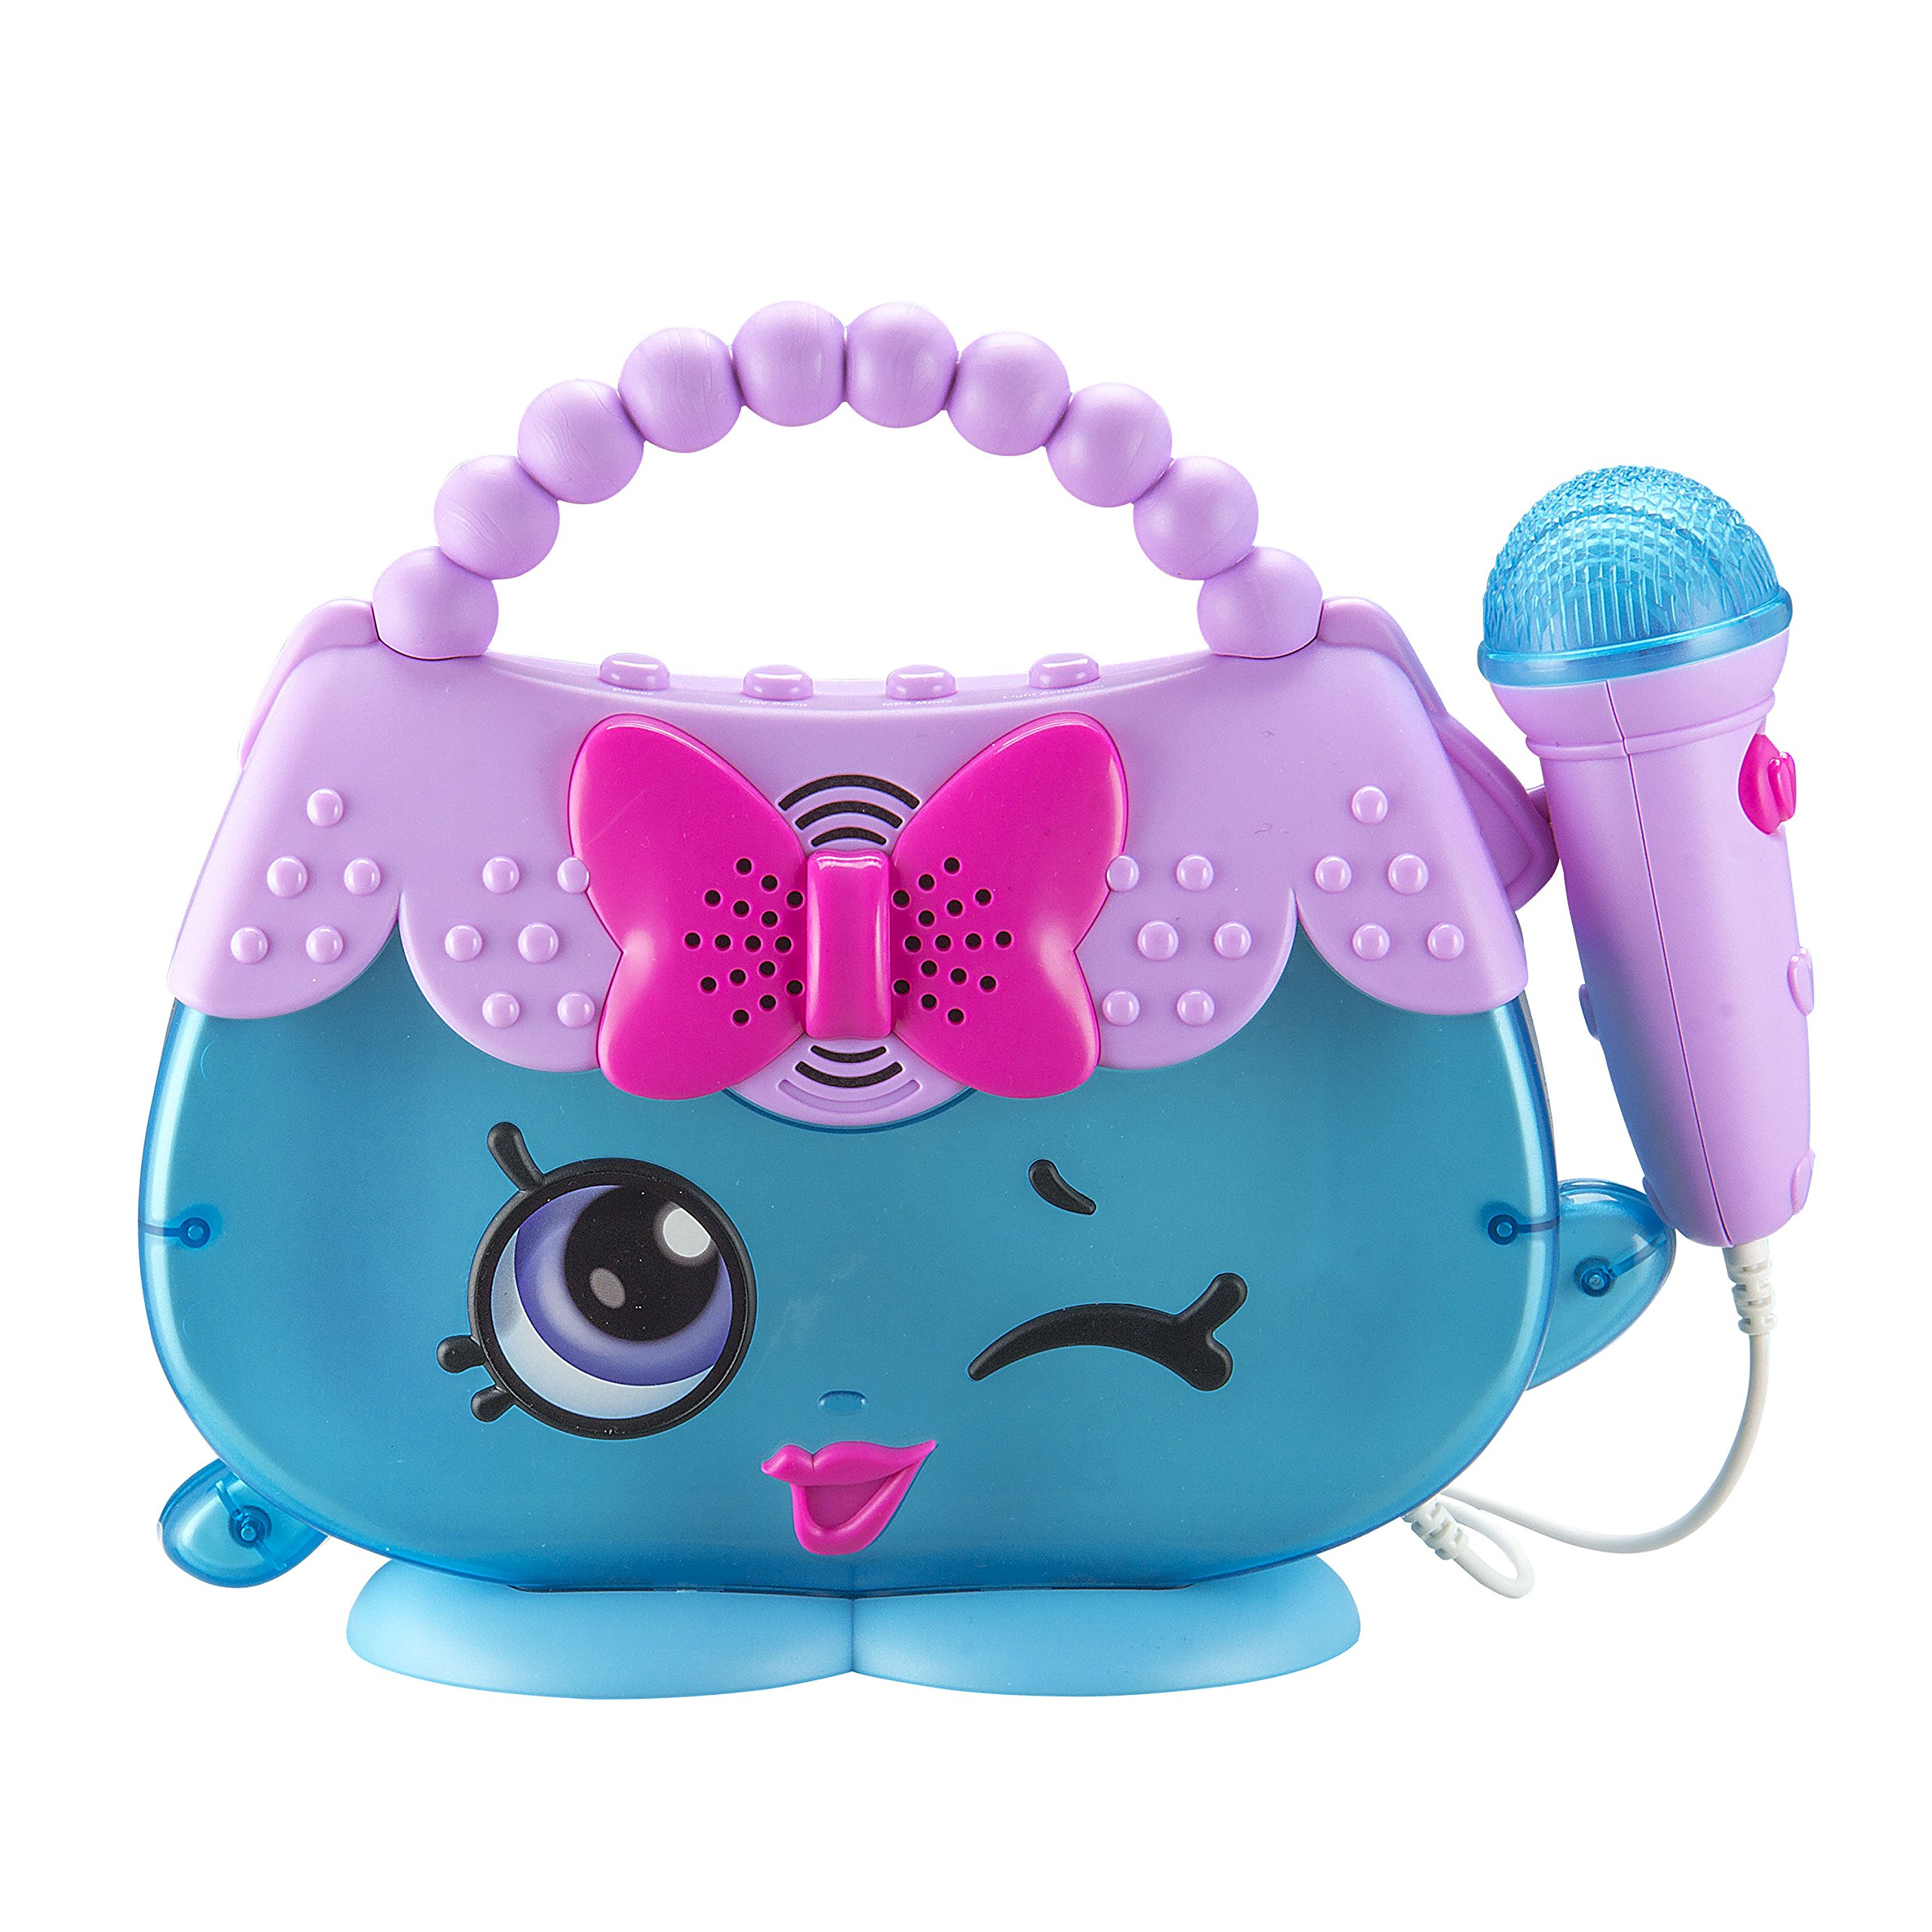 Shopkins Sing Along Boombox with Real Working Microphone Connects to Your MP3 Player Handbag Harriet Design by Shopkins